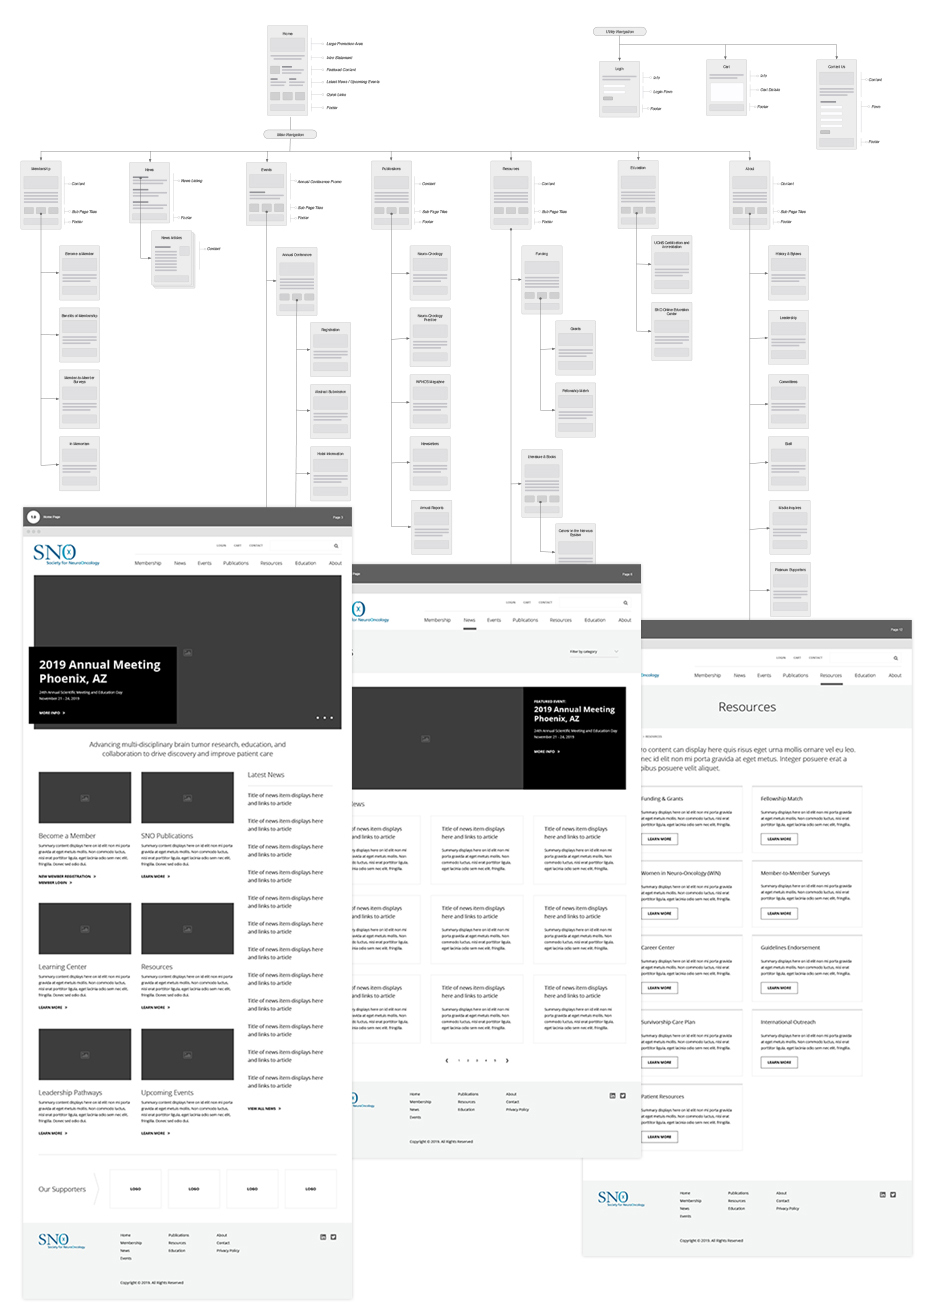 Information Architecture and wireframes for Society for Neuro-Oncology